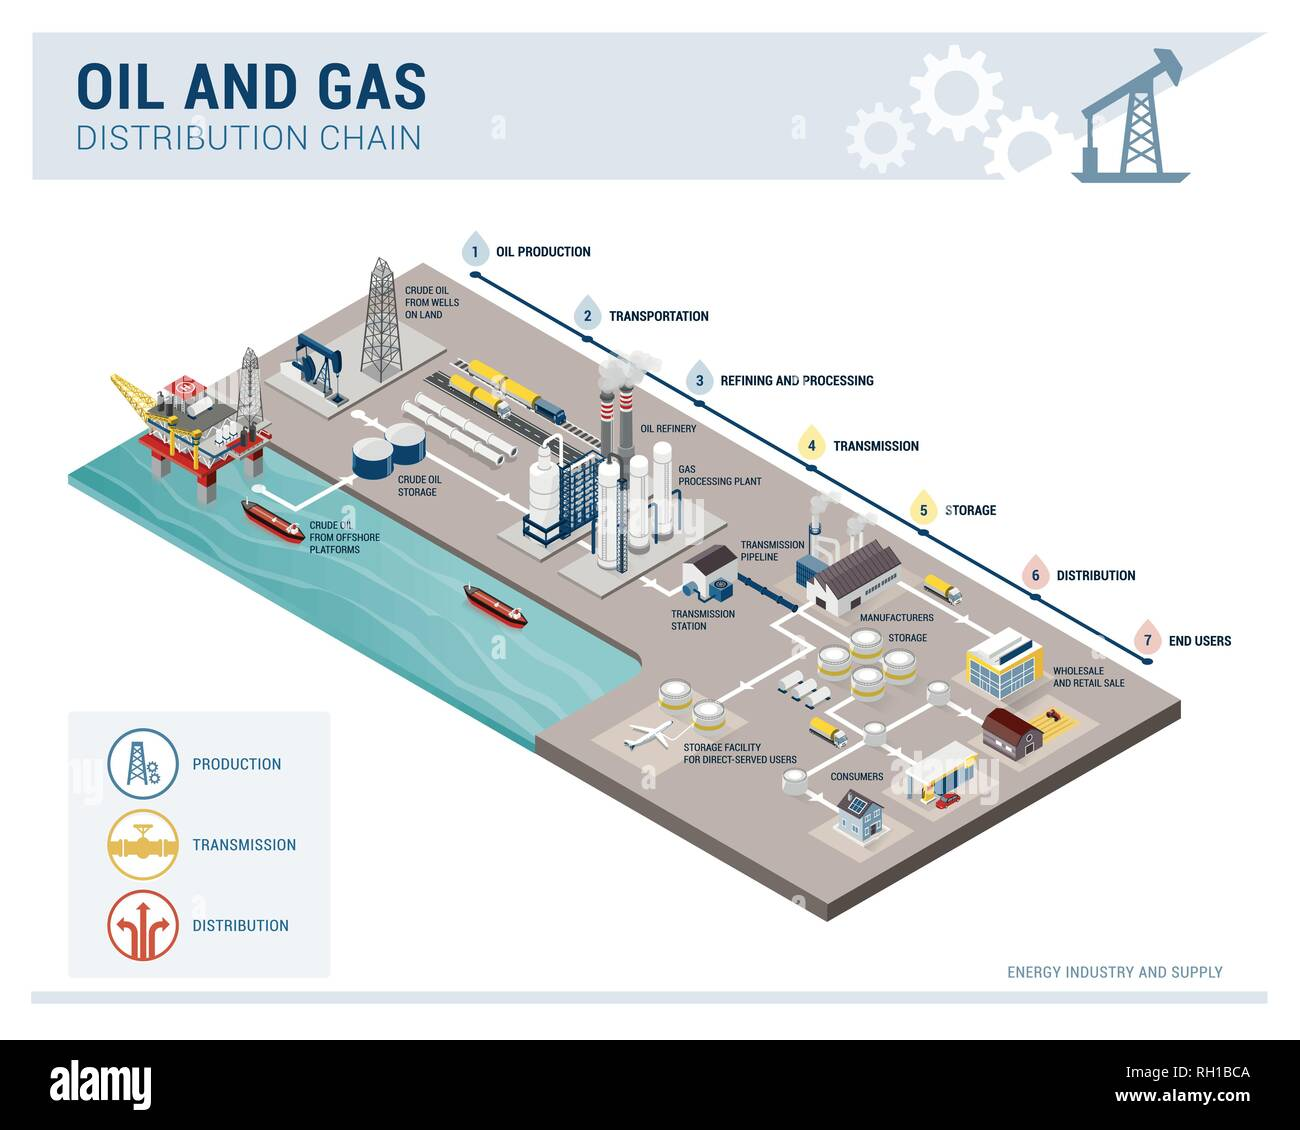 Oil and gas production and distribution chain isometric infographic, energy supply and industry concept - Stock Image